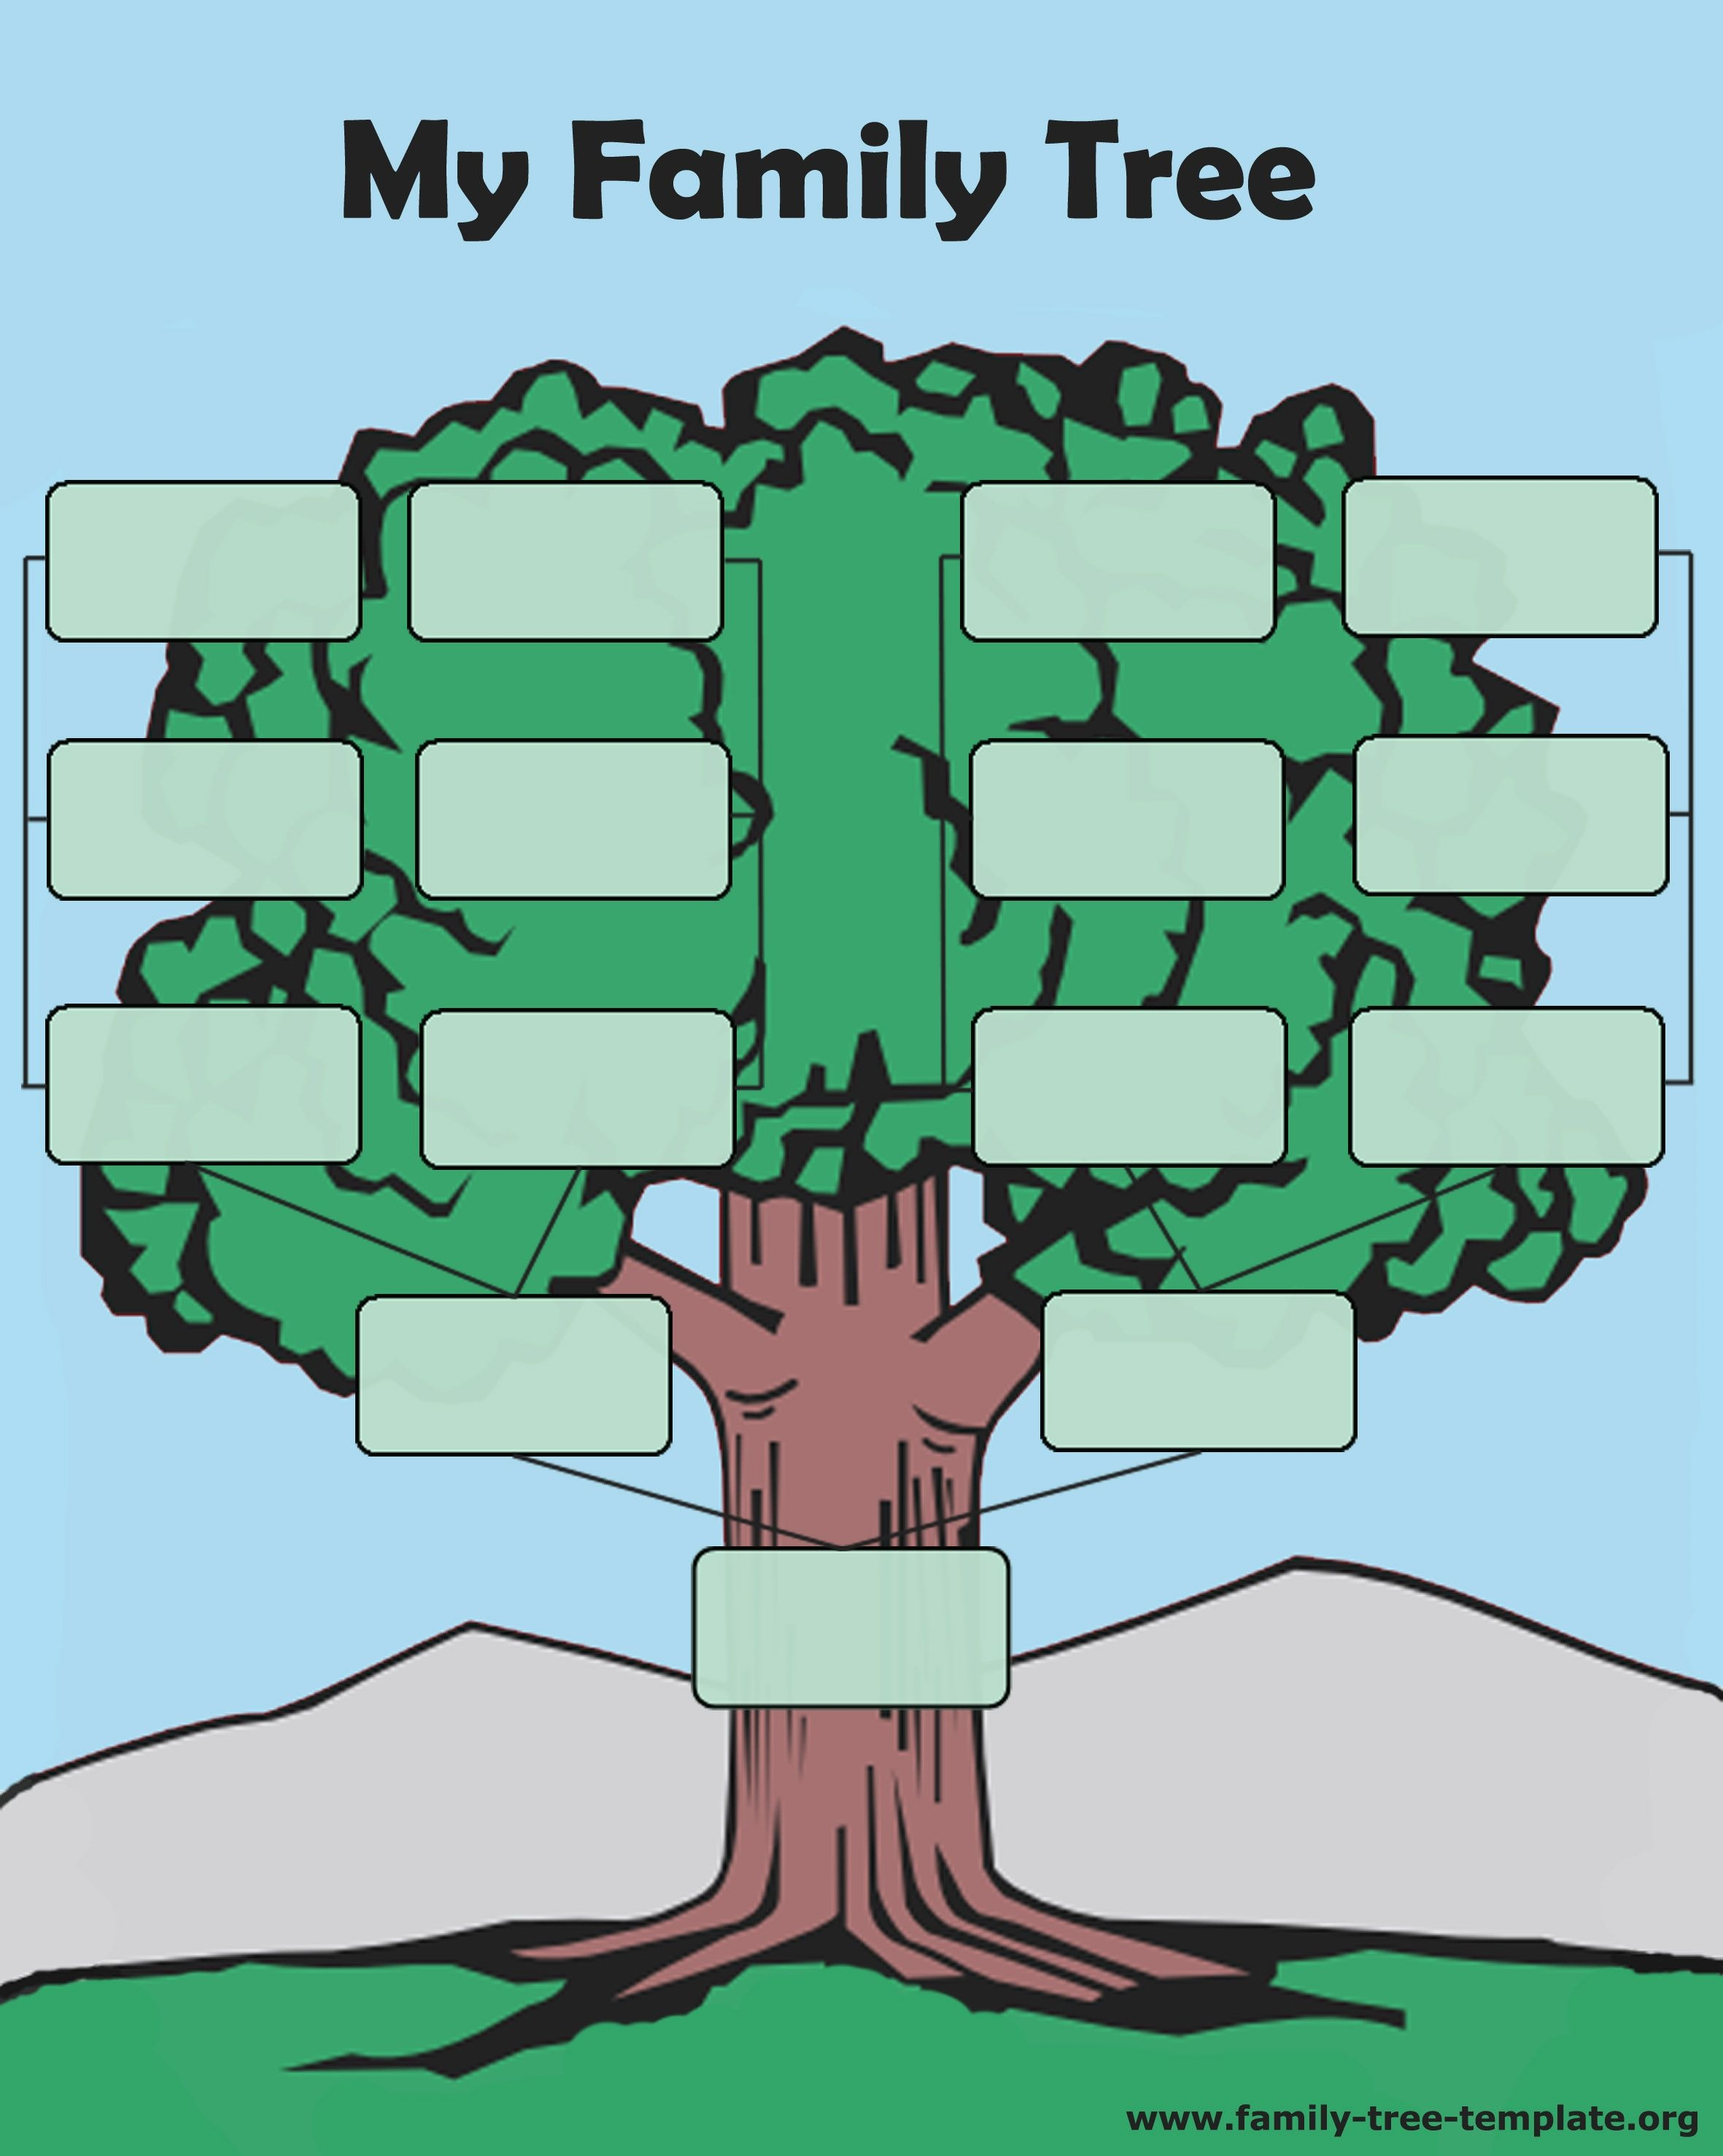 Tree Forms To Print And Fill Out Another Printable Oak Tree Chart - Family Tree Maker Free Printable